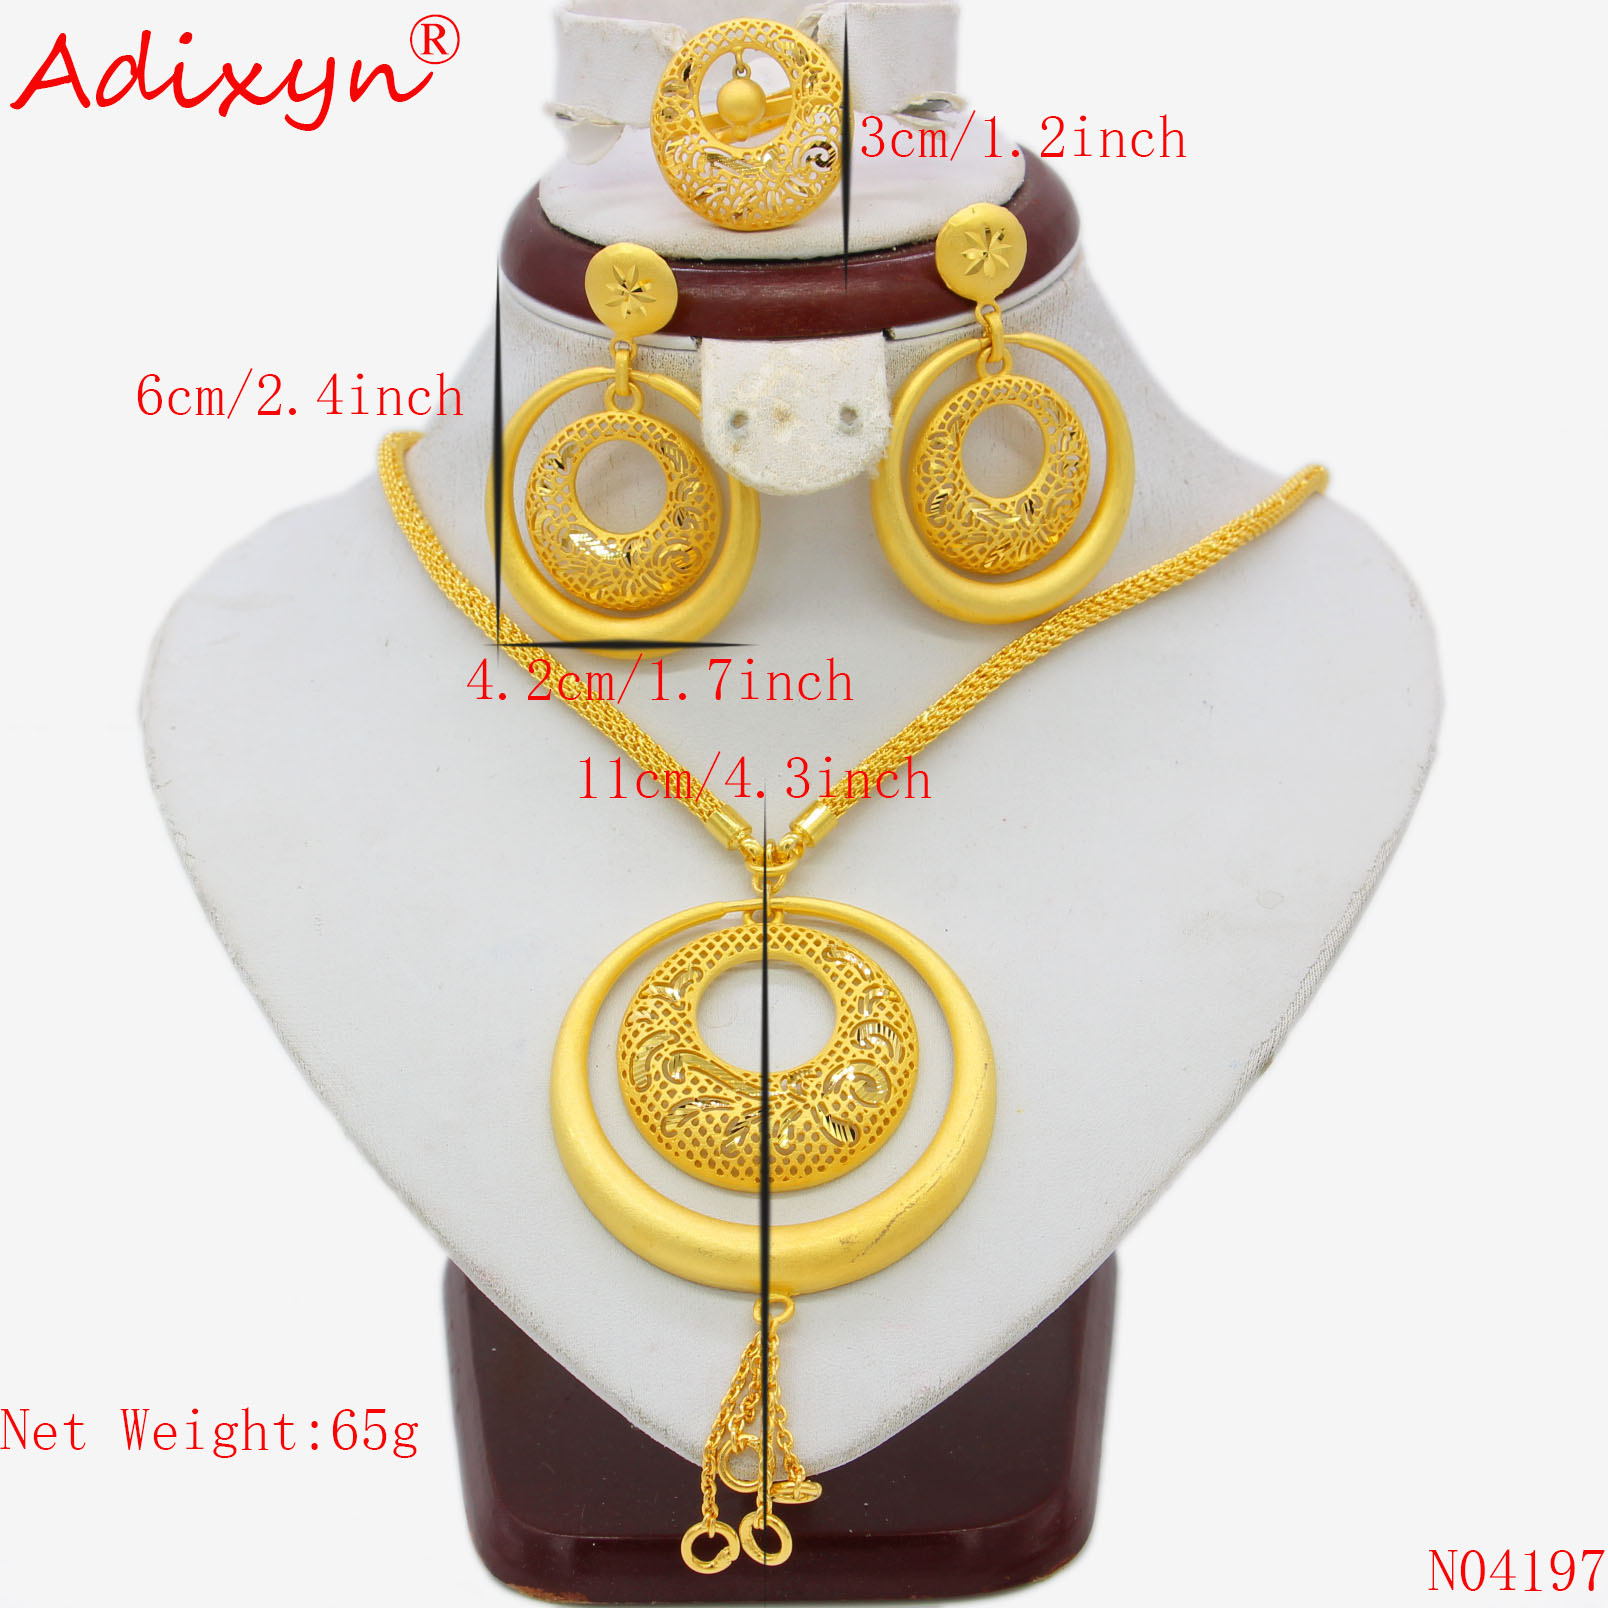 Adixyn India Big Heavy Jewelry Set Gold Color Long Necklace Earrings Ring Pendant For Women African Adixyn India Big Heavy Jewelry Set Gold Color Long Necklace/Earrings/Ring/Pendant For Women African Wedding Jewelry Gifts N04197